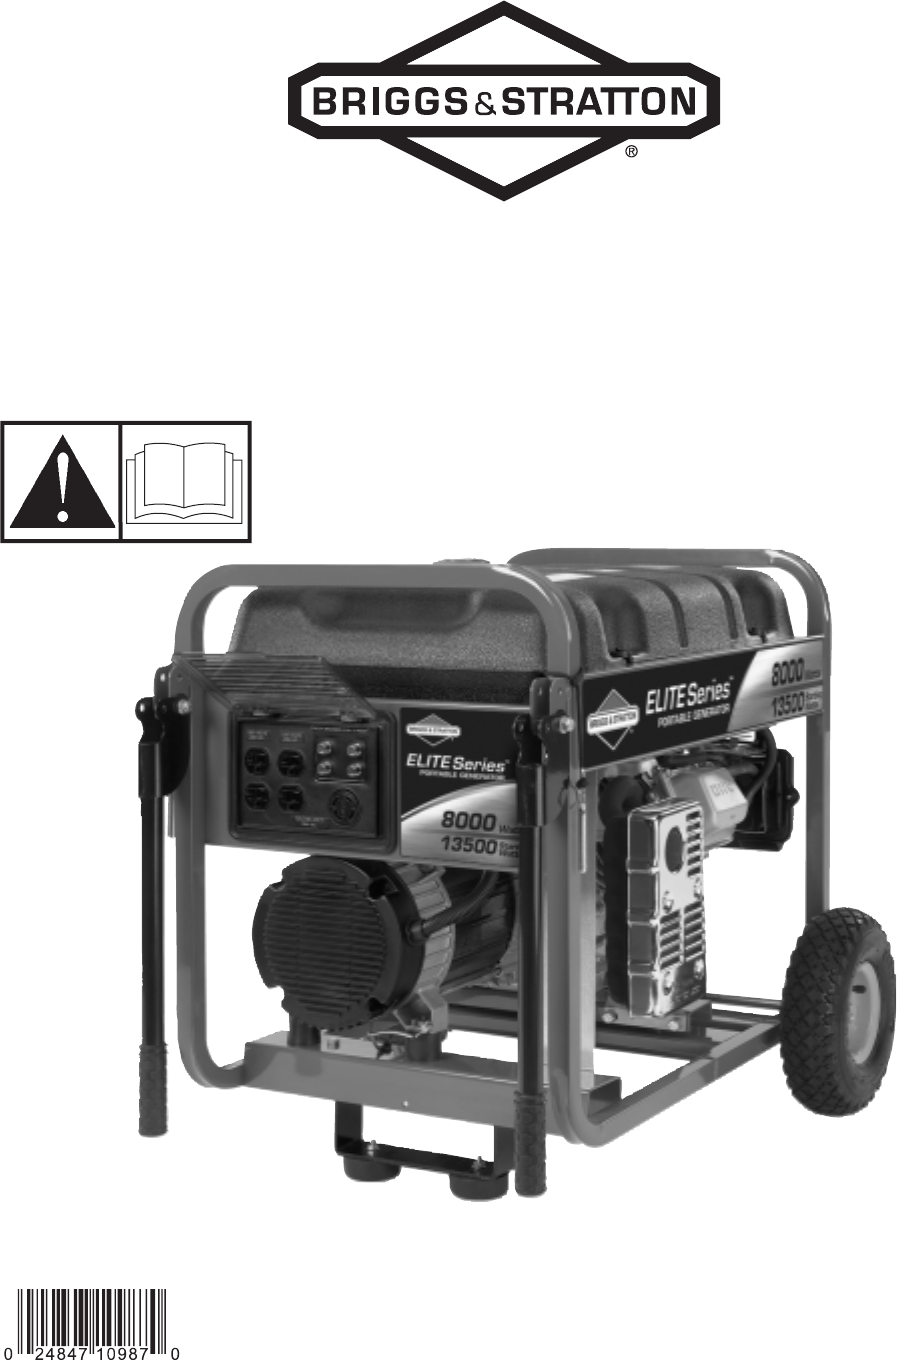 briggs stratton portable generator 8000 watt portable generator rh lawnandgarden manualsonline com briggs and stratton 5500 watt portable generator manual briggs & stratton 6250 watt portable generator manual